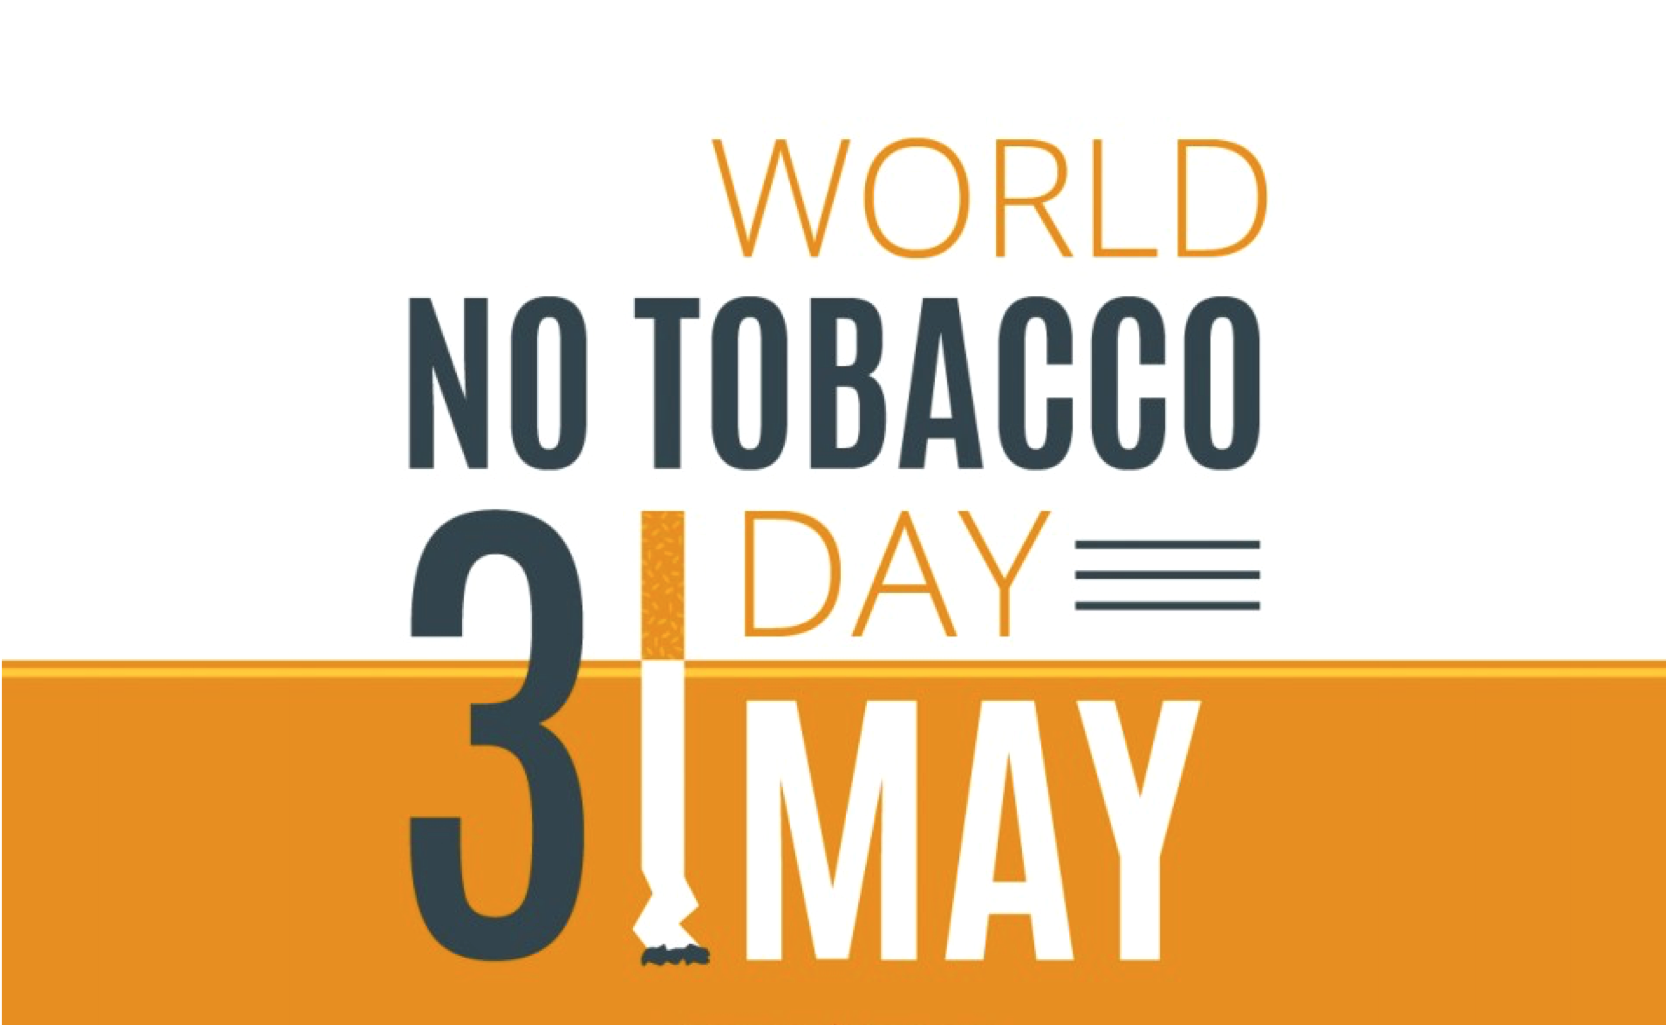 essay world no tobacco day 'world anti-tobacco day' is observed around the world every year on may 31 world no tobacco day is one of many other world health awareness days throughout the year organized by the who the member states of the world health organization (who) created world no tobacco day (wntd) in 1987.